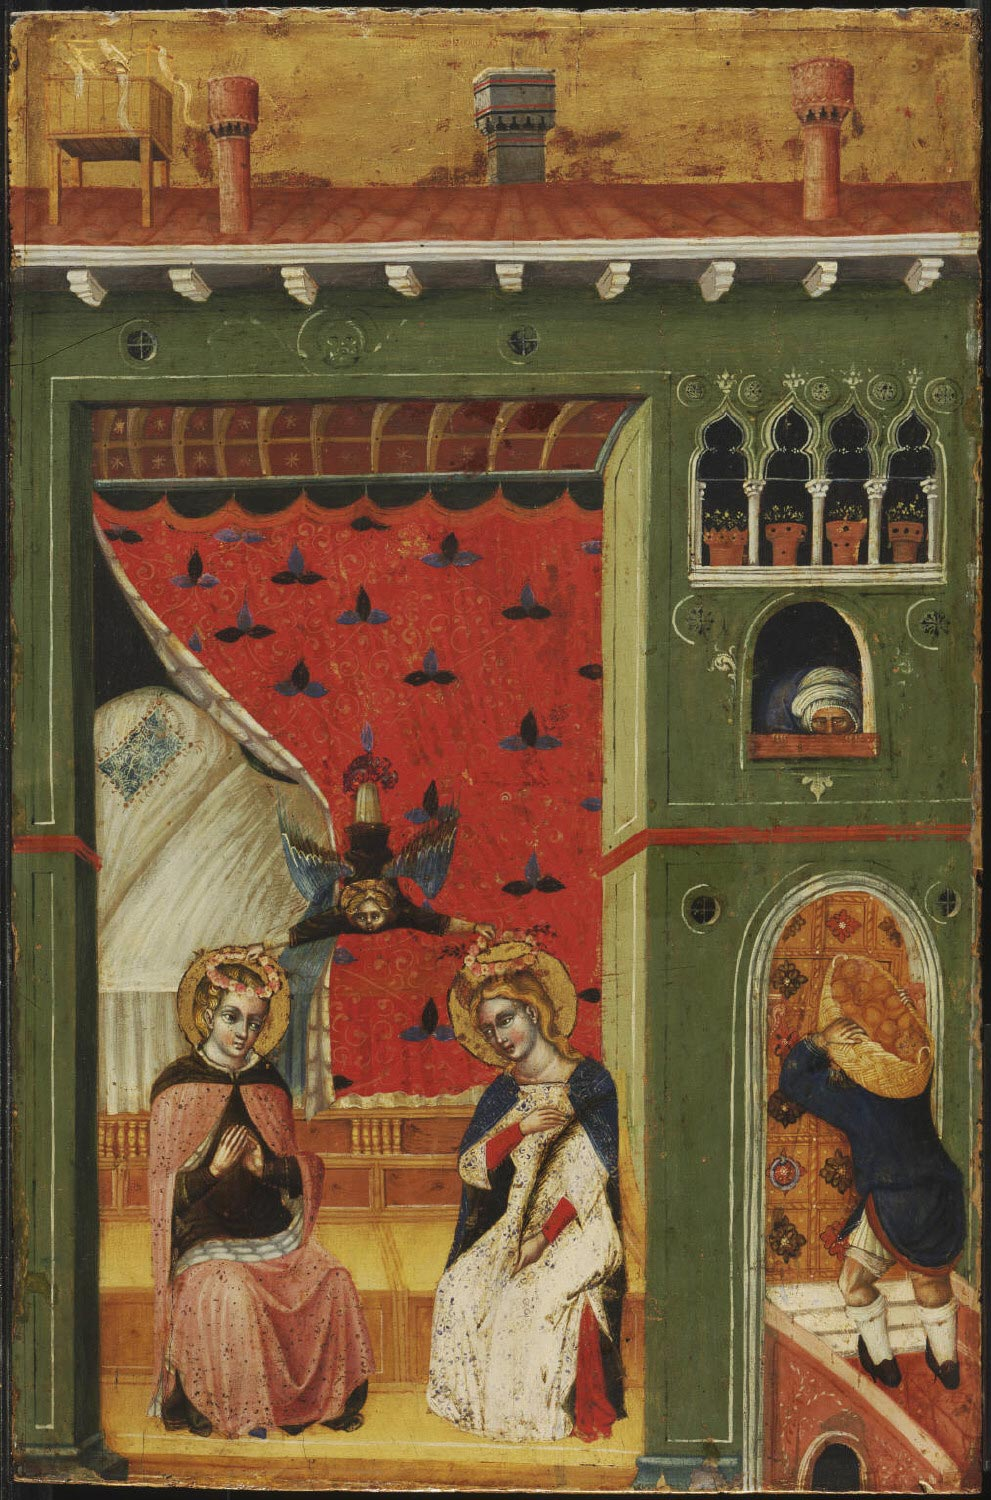 Saint Cecilia of Rome and Her Husband, Valerian, Being Crowned by an Angel